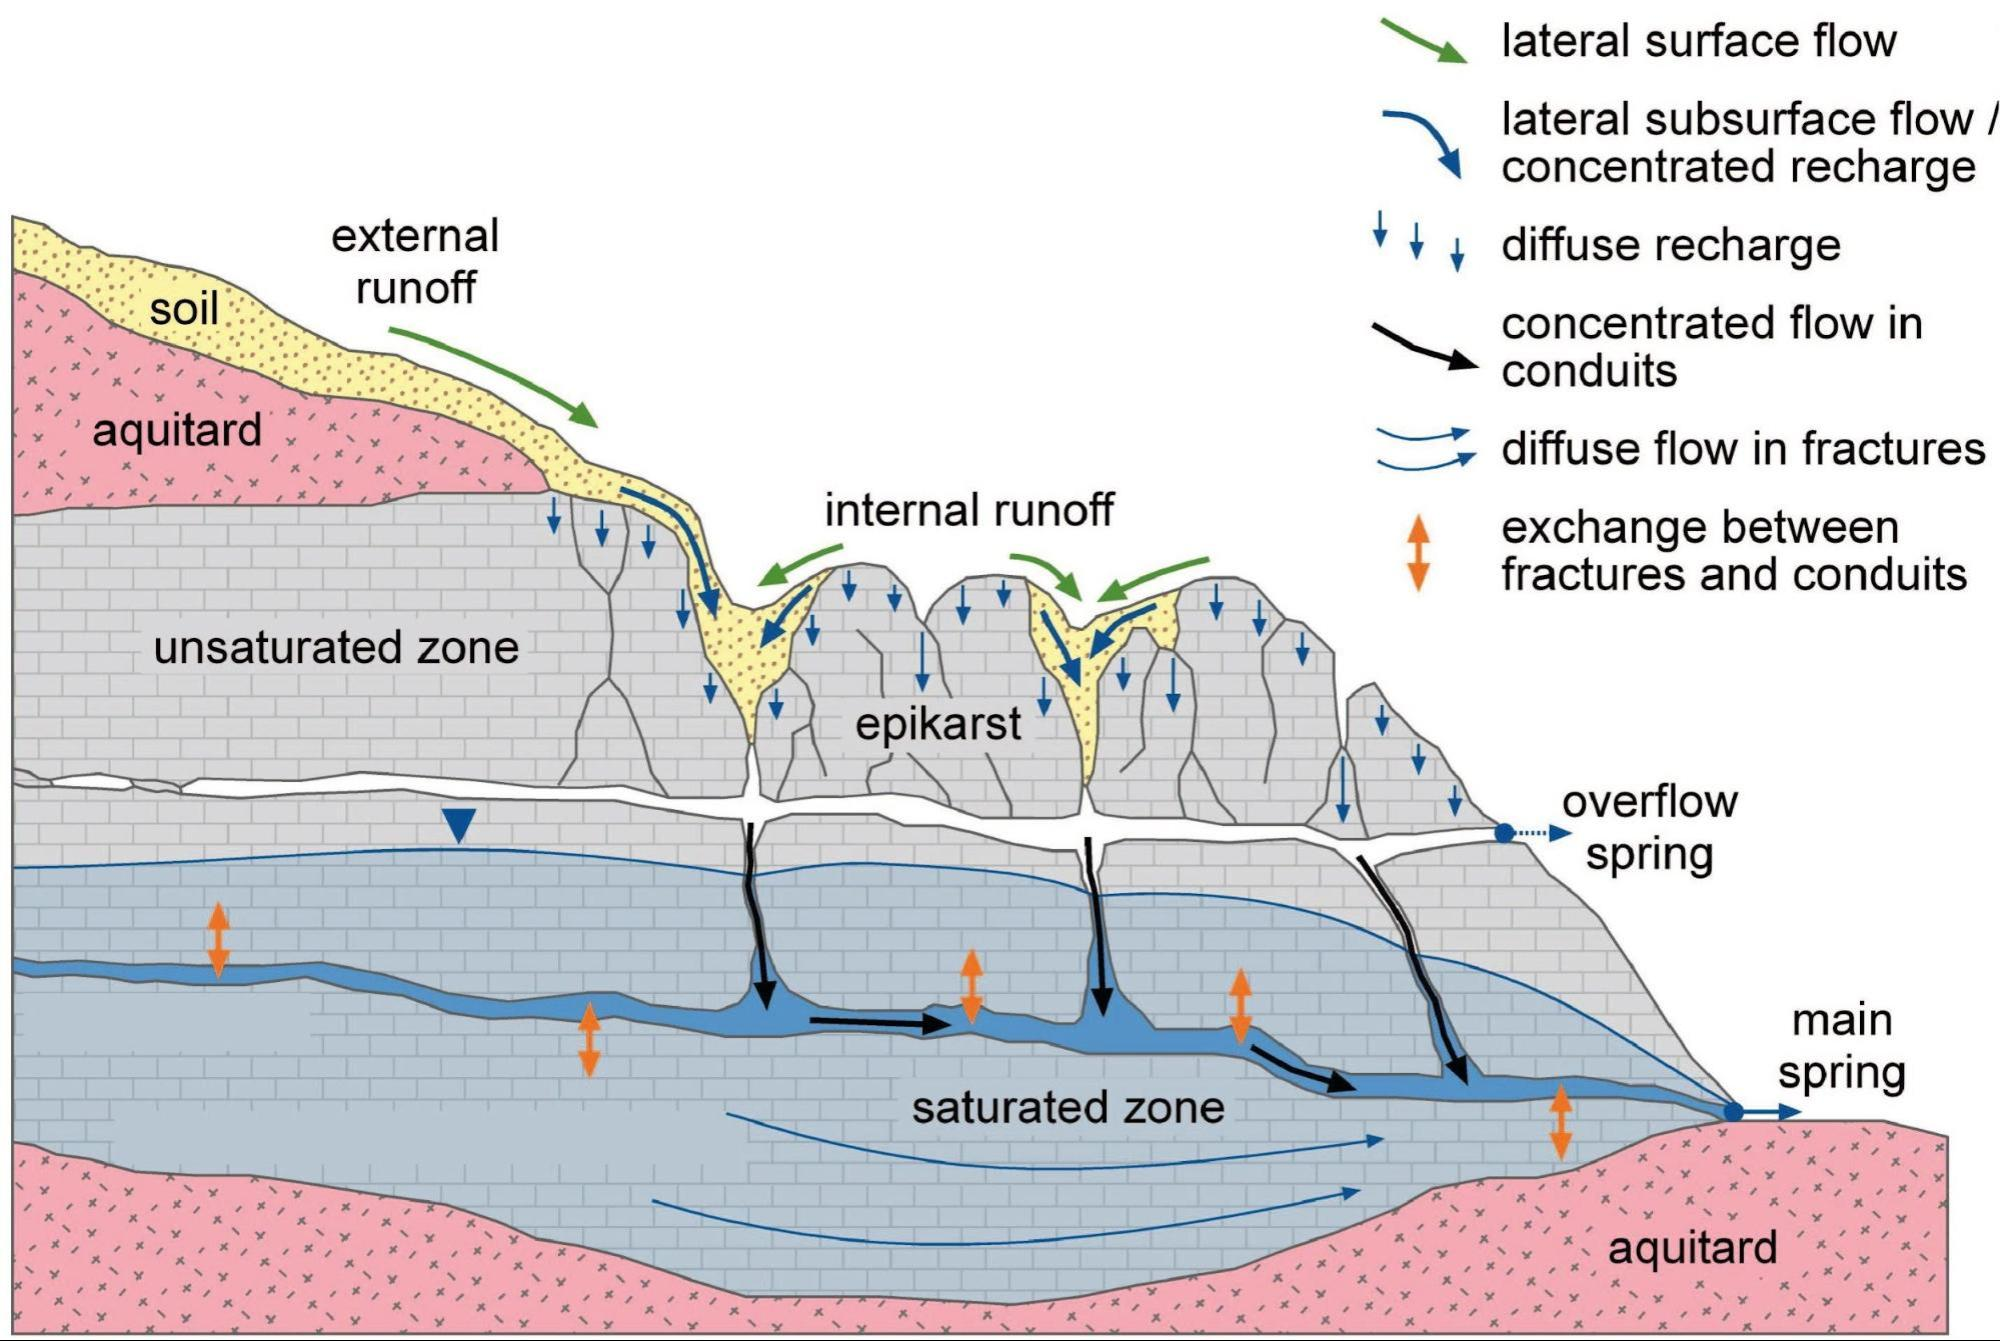 hight resolution of figure 1 schematic description of karstic groundwater flow and storage hartmann et al 2014 modified